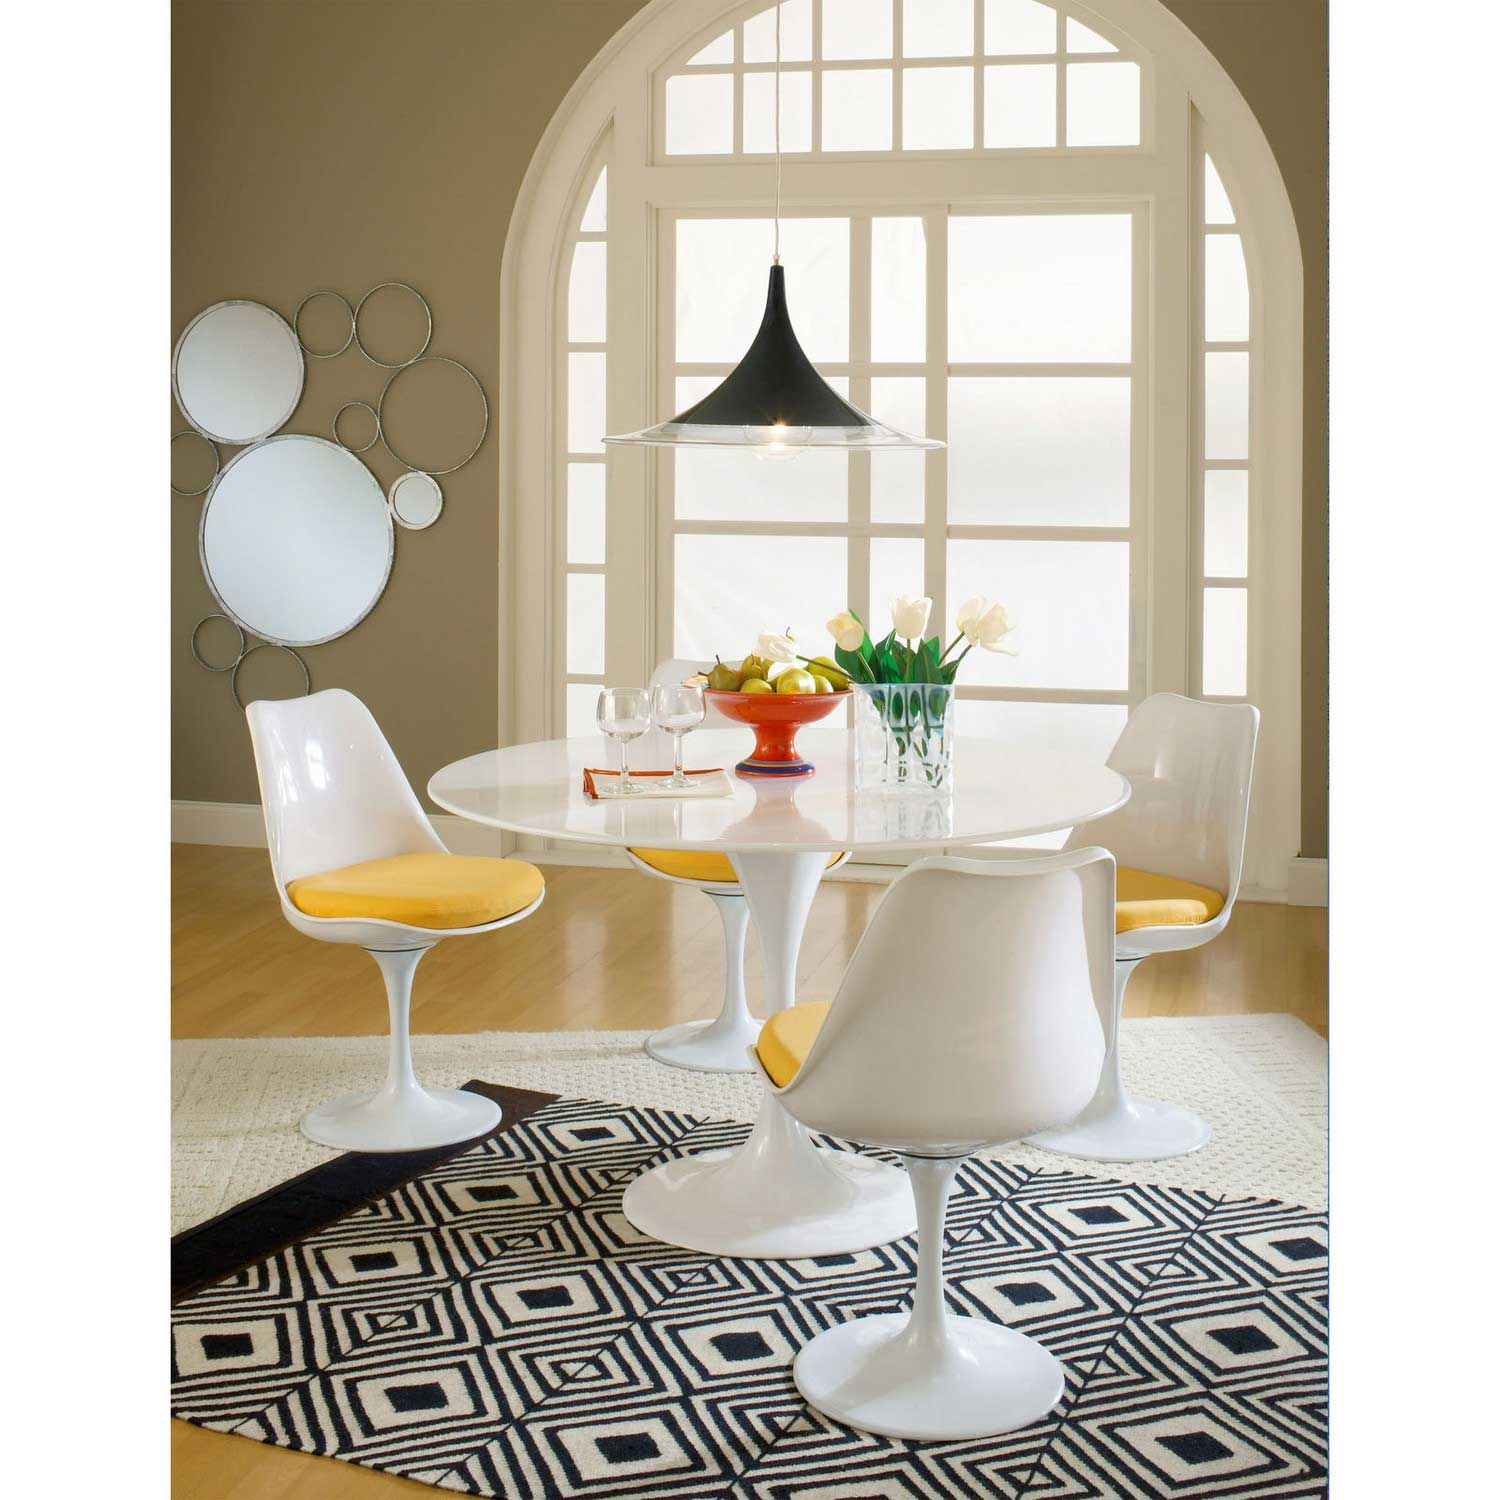 Modway Lippa 5 Piece Fiberglass Dining Set - Yellow